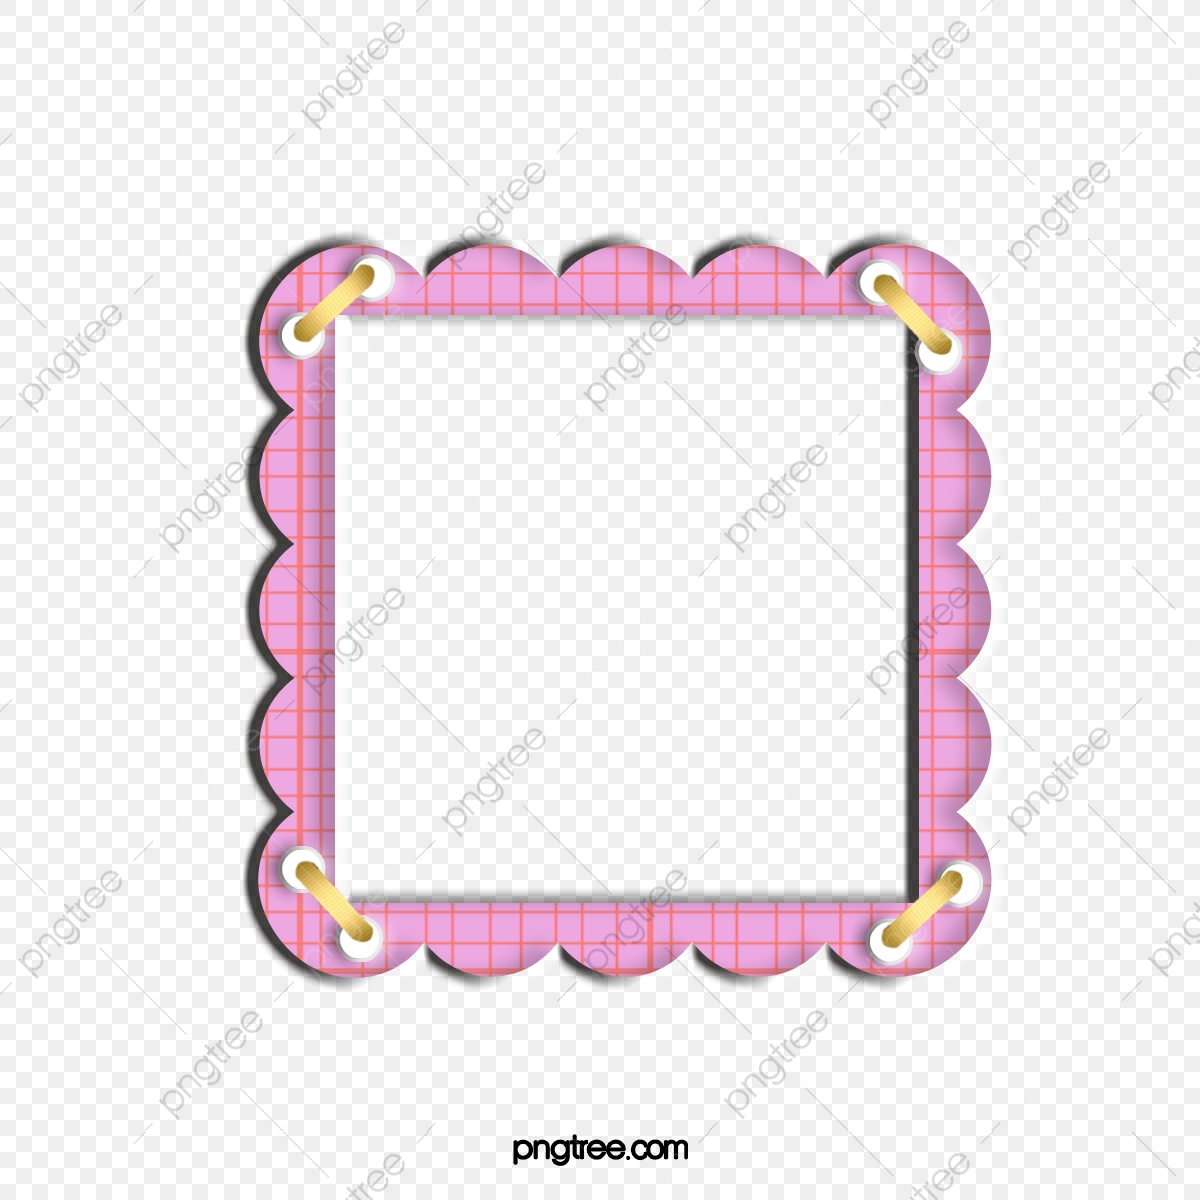 Cute Pink Border, Cute Clipart, Border, Frame PNG.